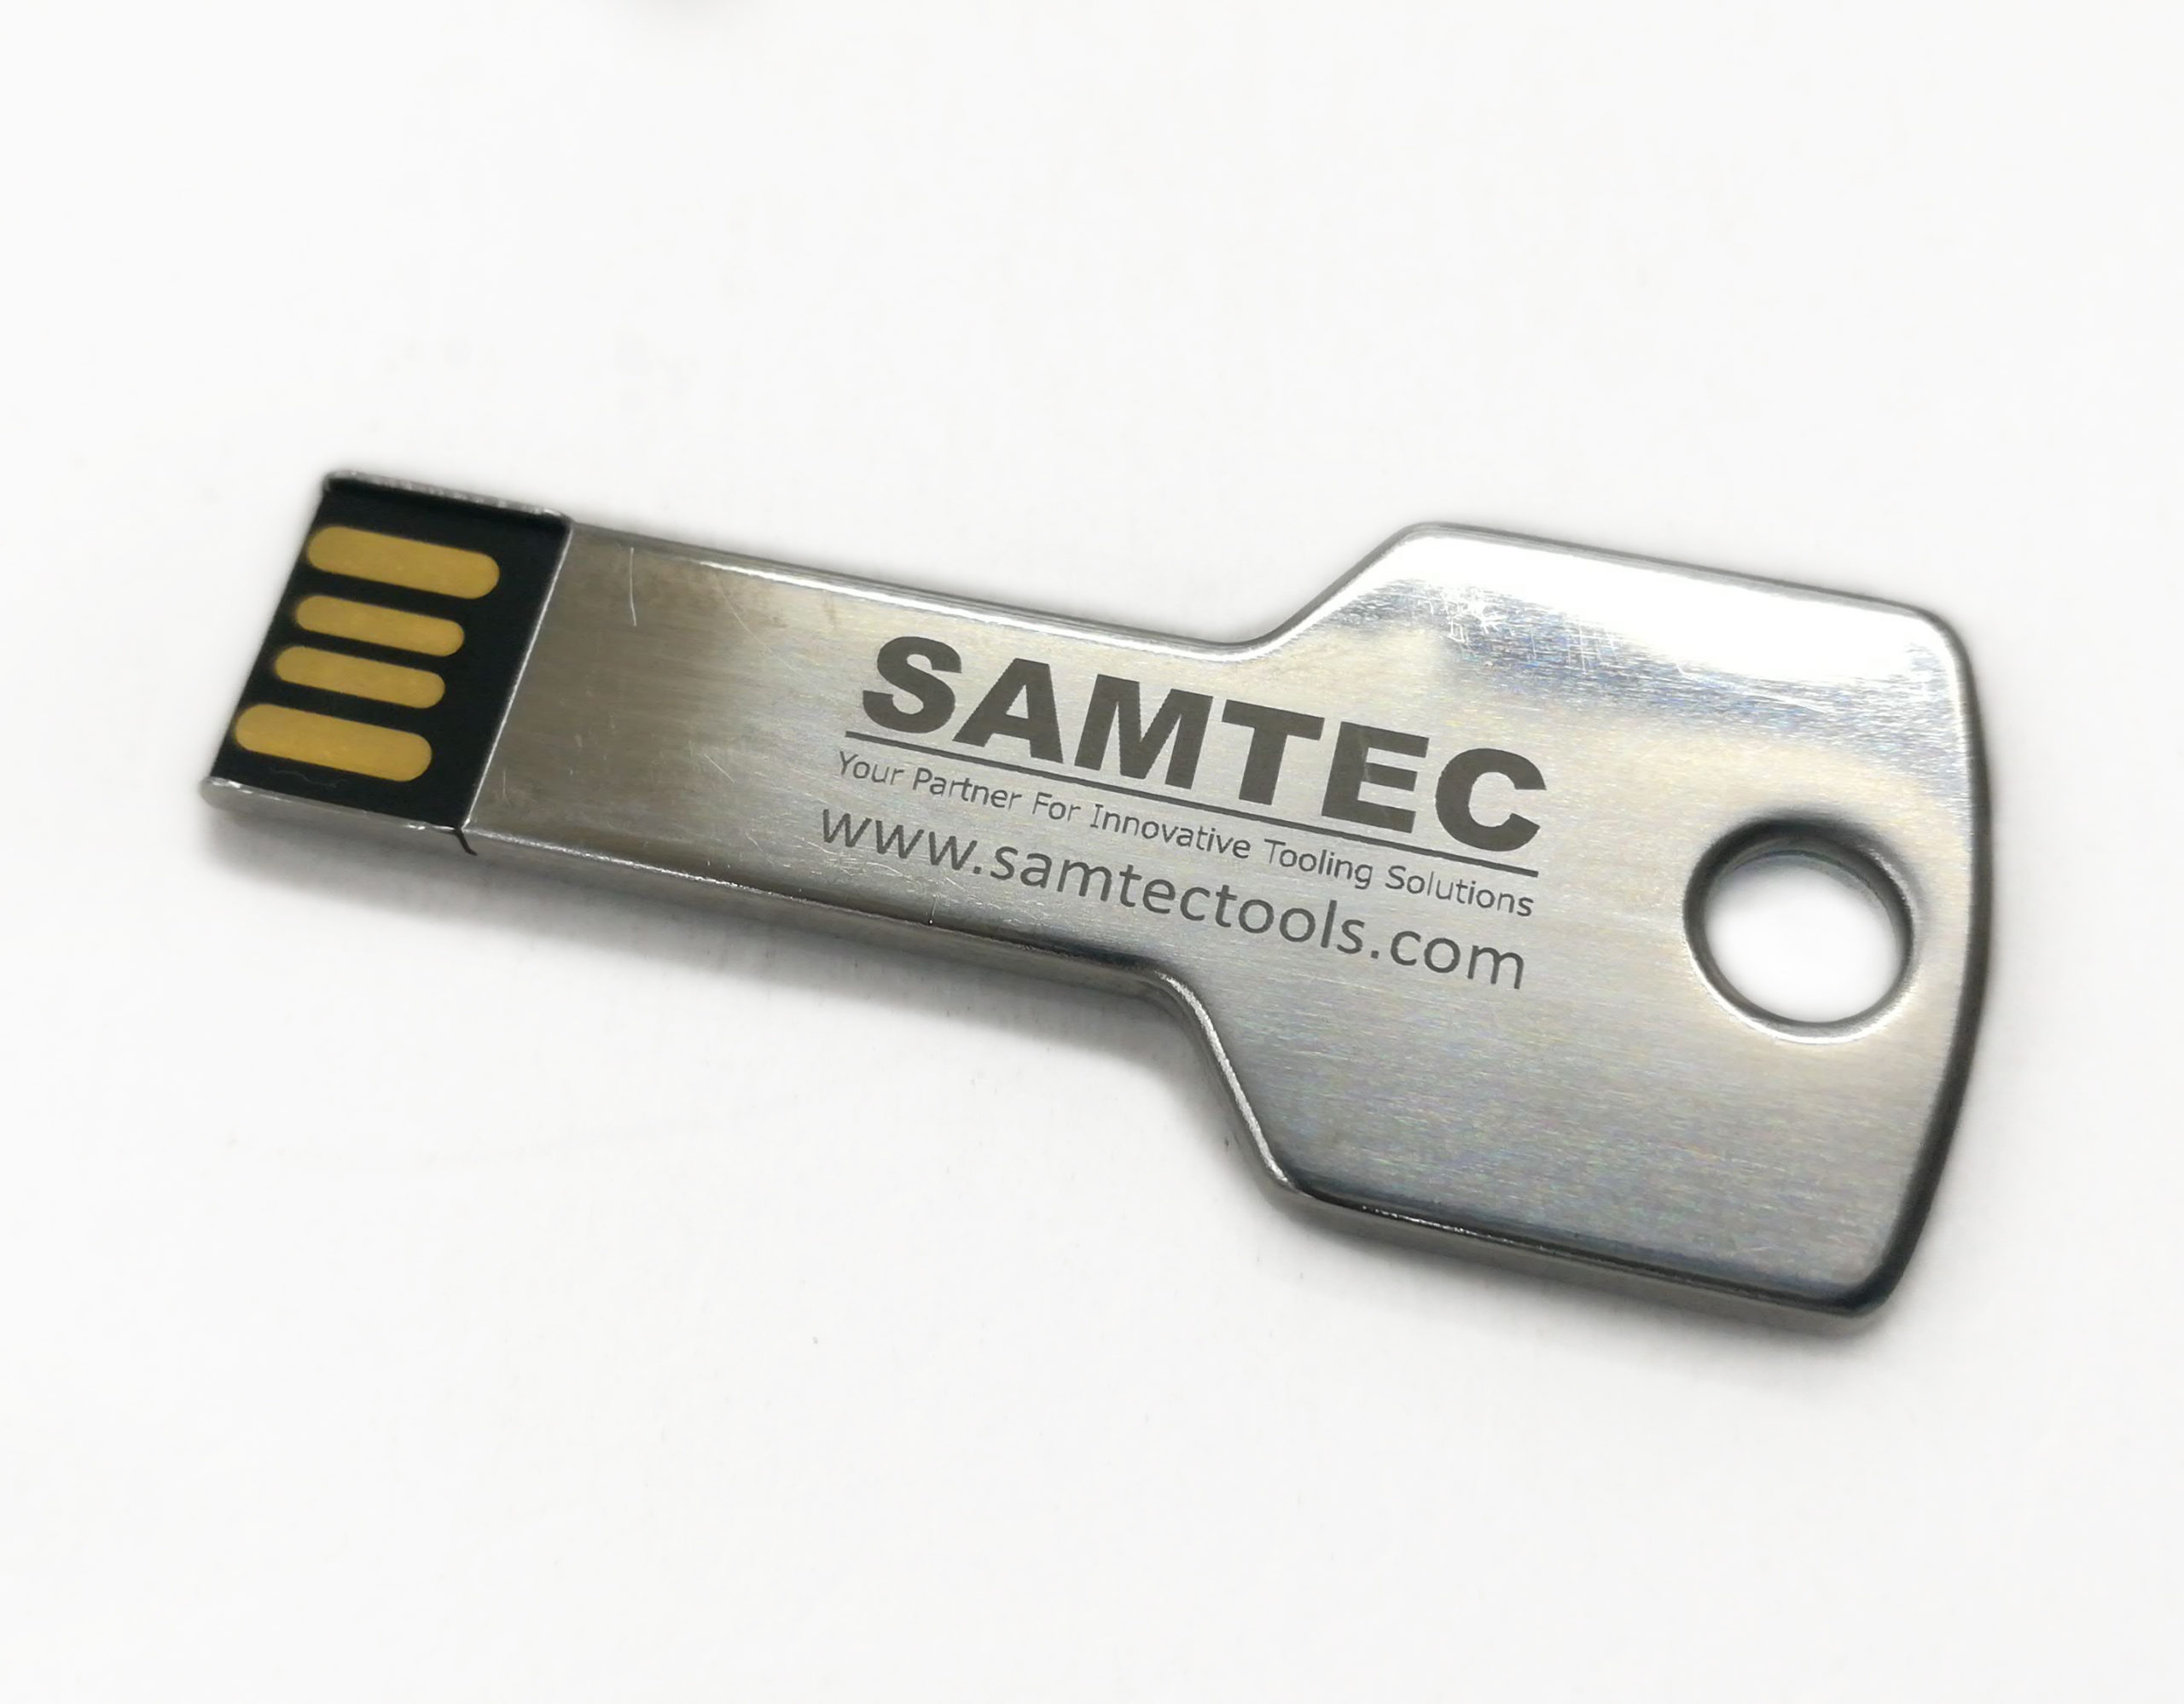 Customized Engraving on Pendrive